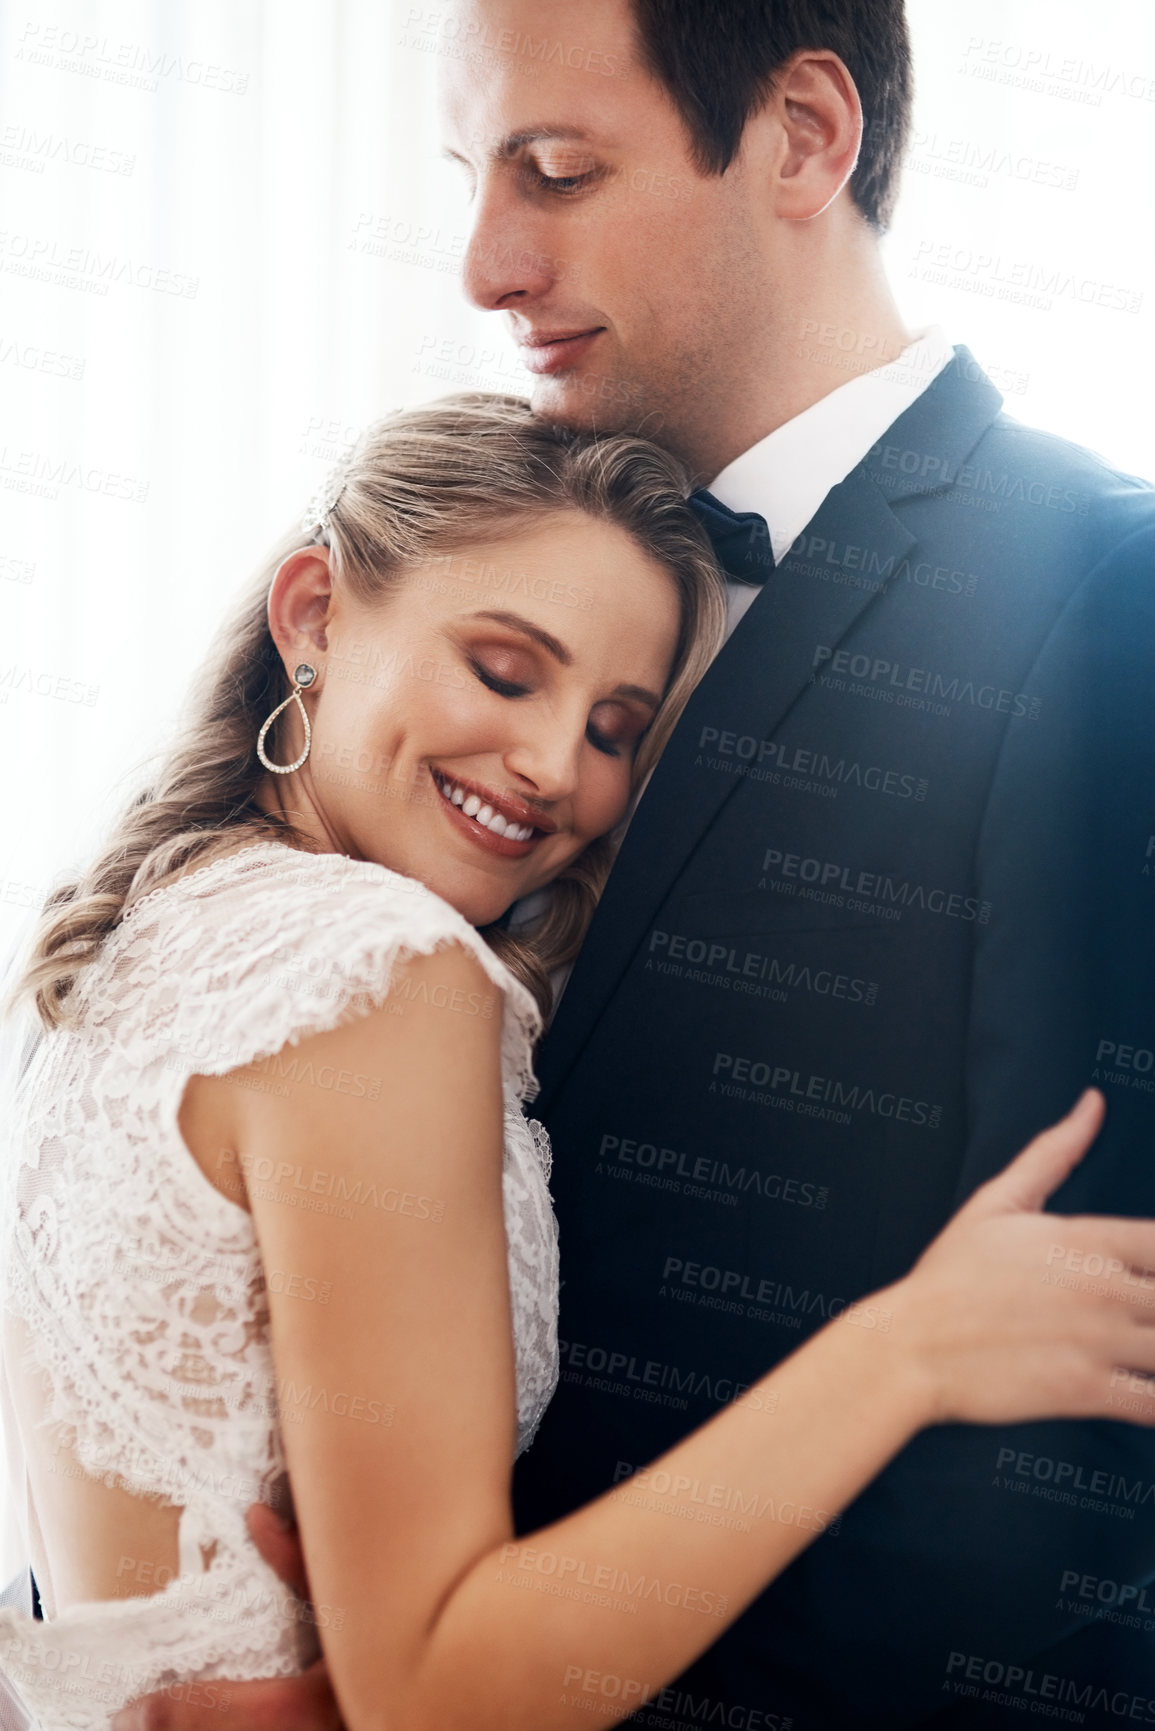 Buy stock photo Cropped shot of a happy young couple standing indoors and hugging each other affectionately after their wedding